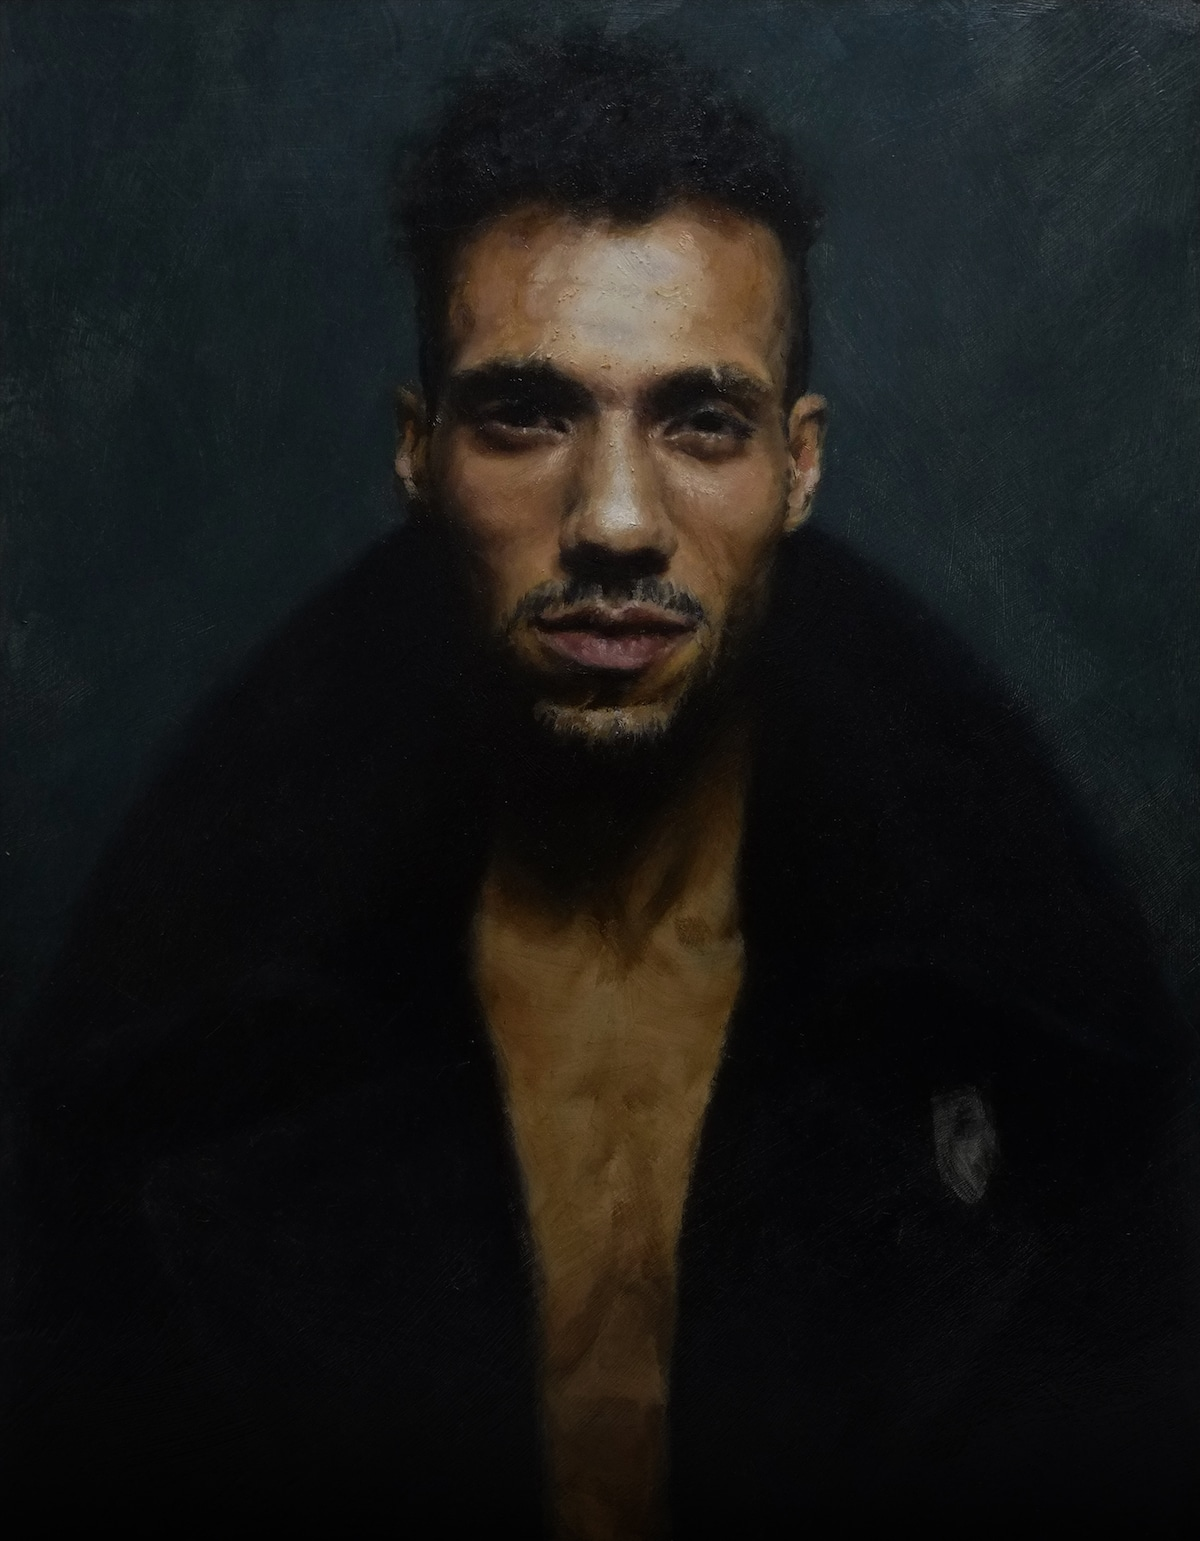 Male Portraiture by Alessandro Tomassetti